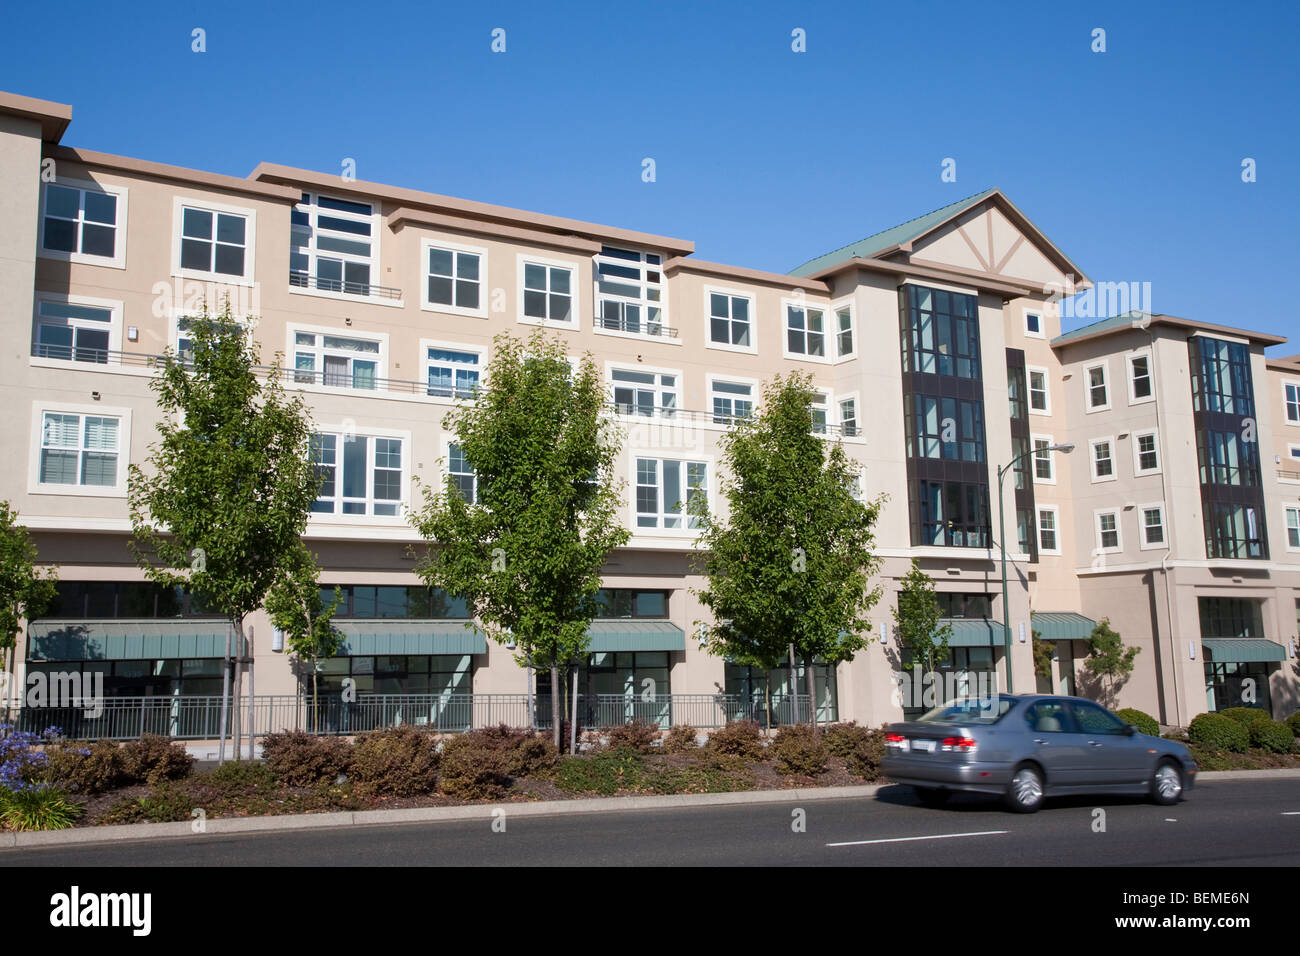 Mixed use housing development (multi use)  Residential condominiums